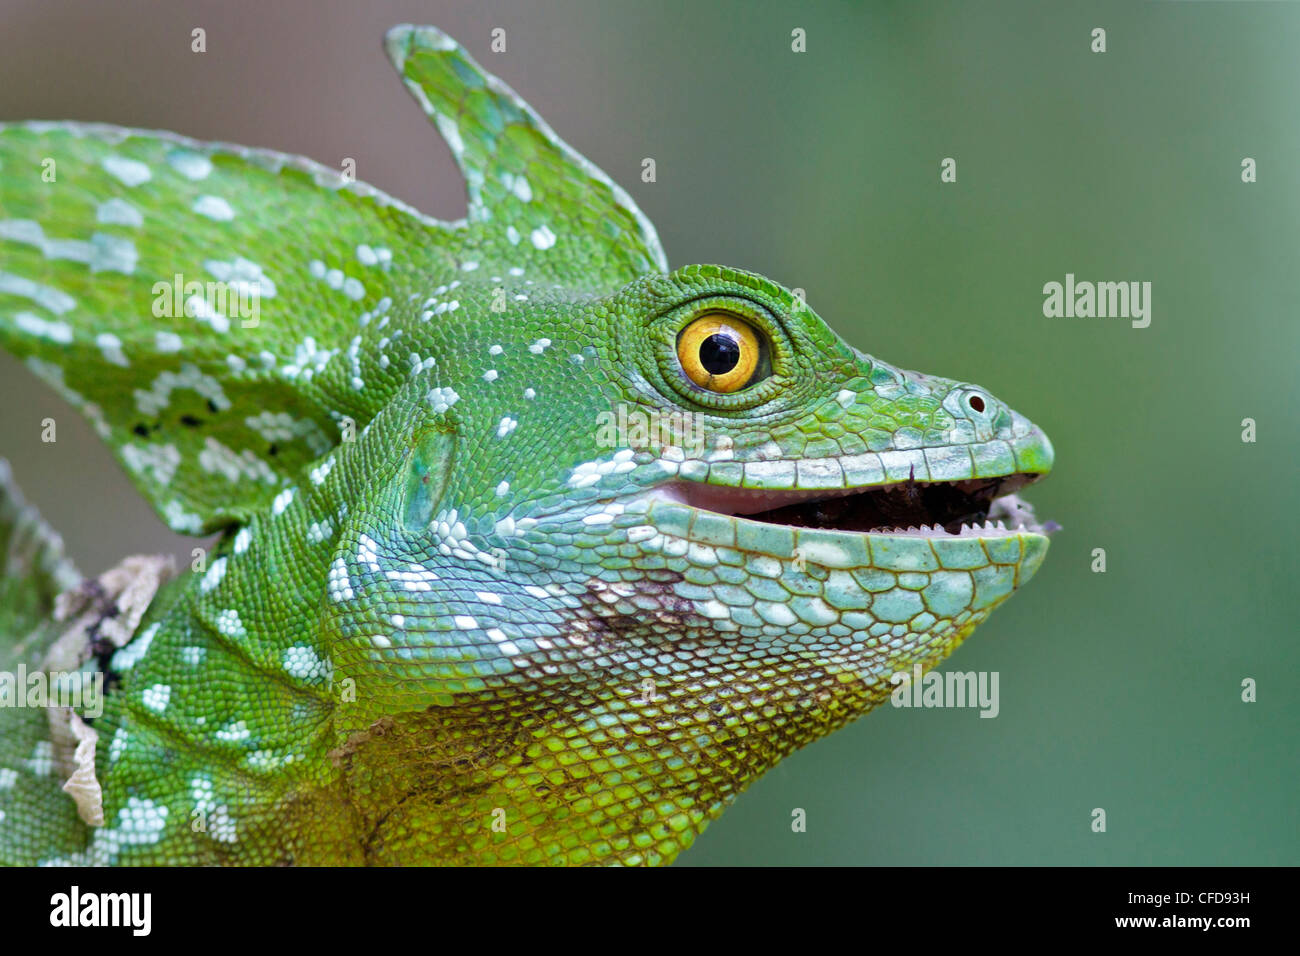 plumed basilisk, Basiliscus plumifrons, eating an insect in Costa Rica. Stock Photo